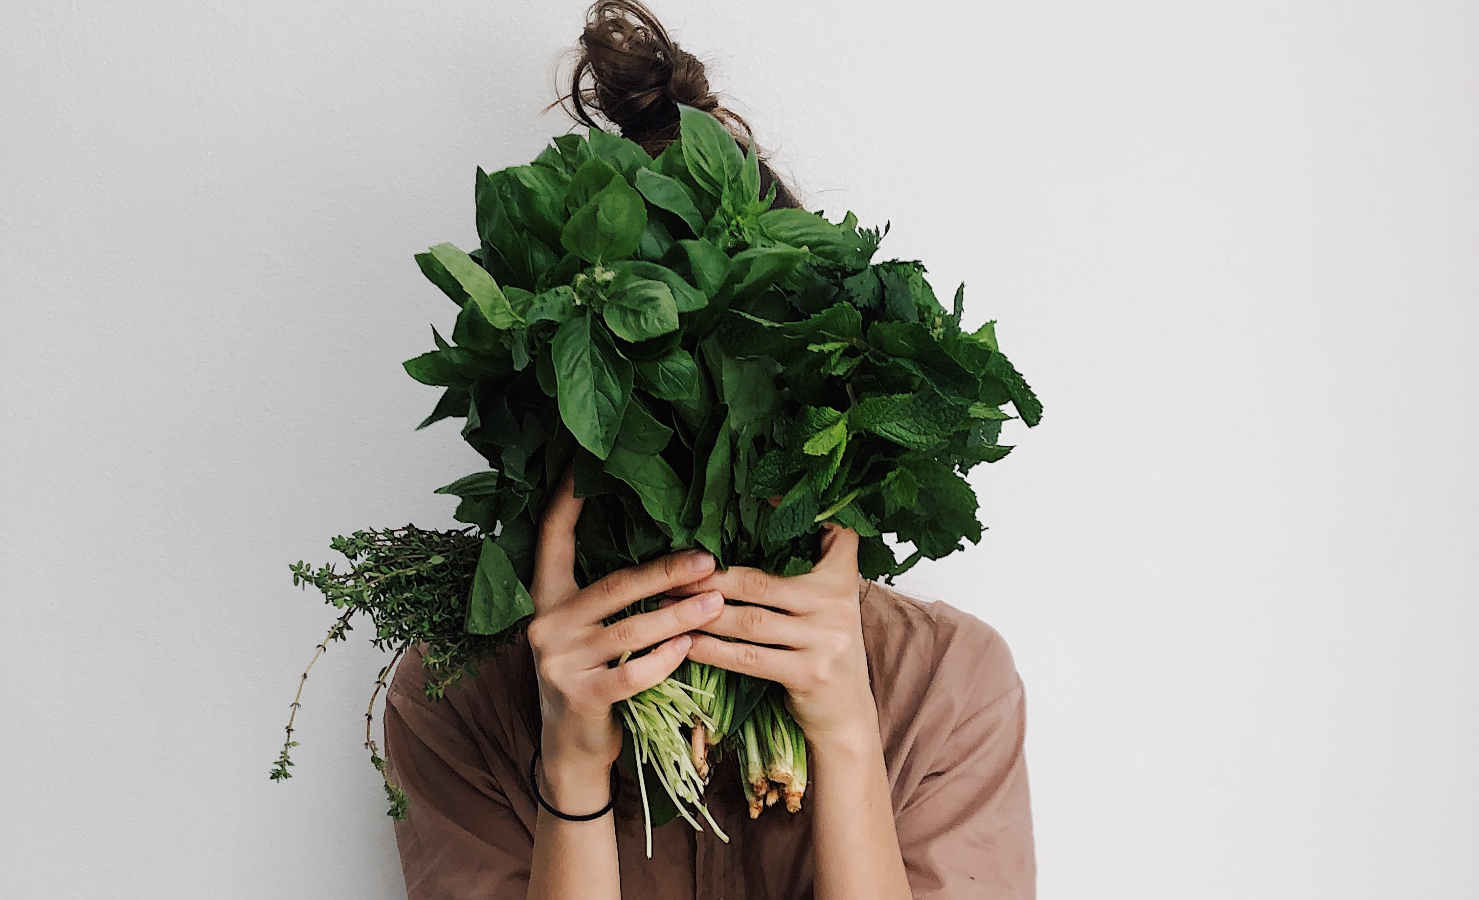 A woman holding leafy greens